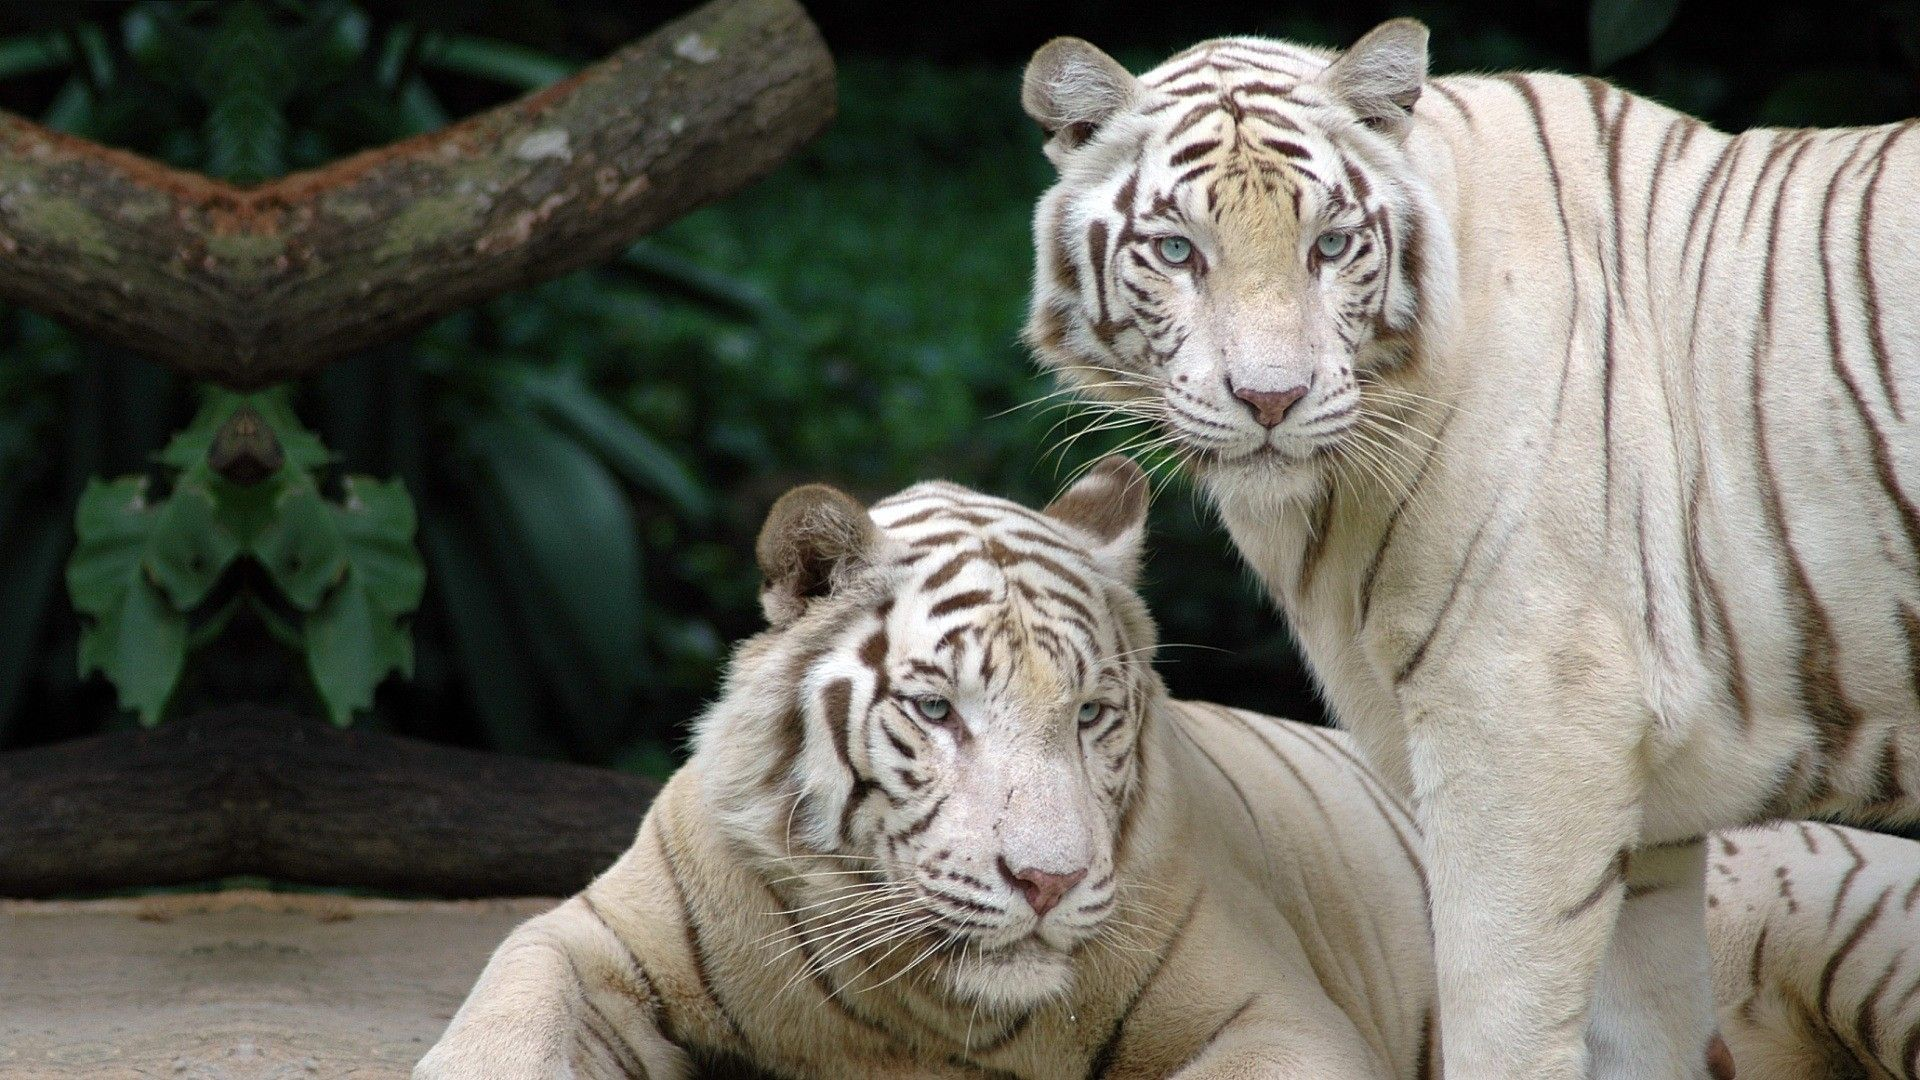 Two White Tigers, Wallpaper Image